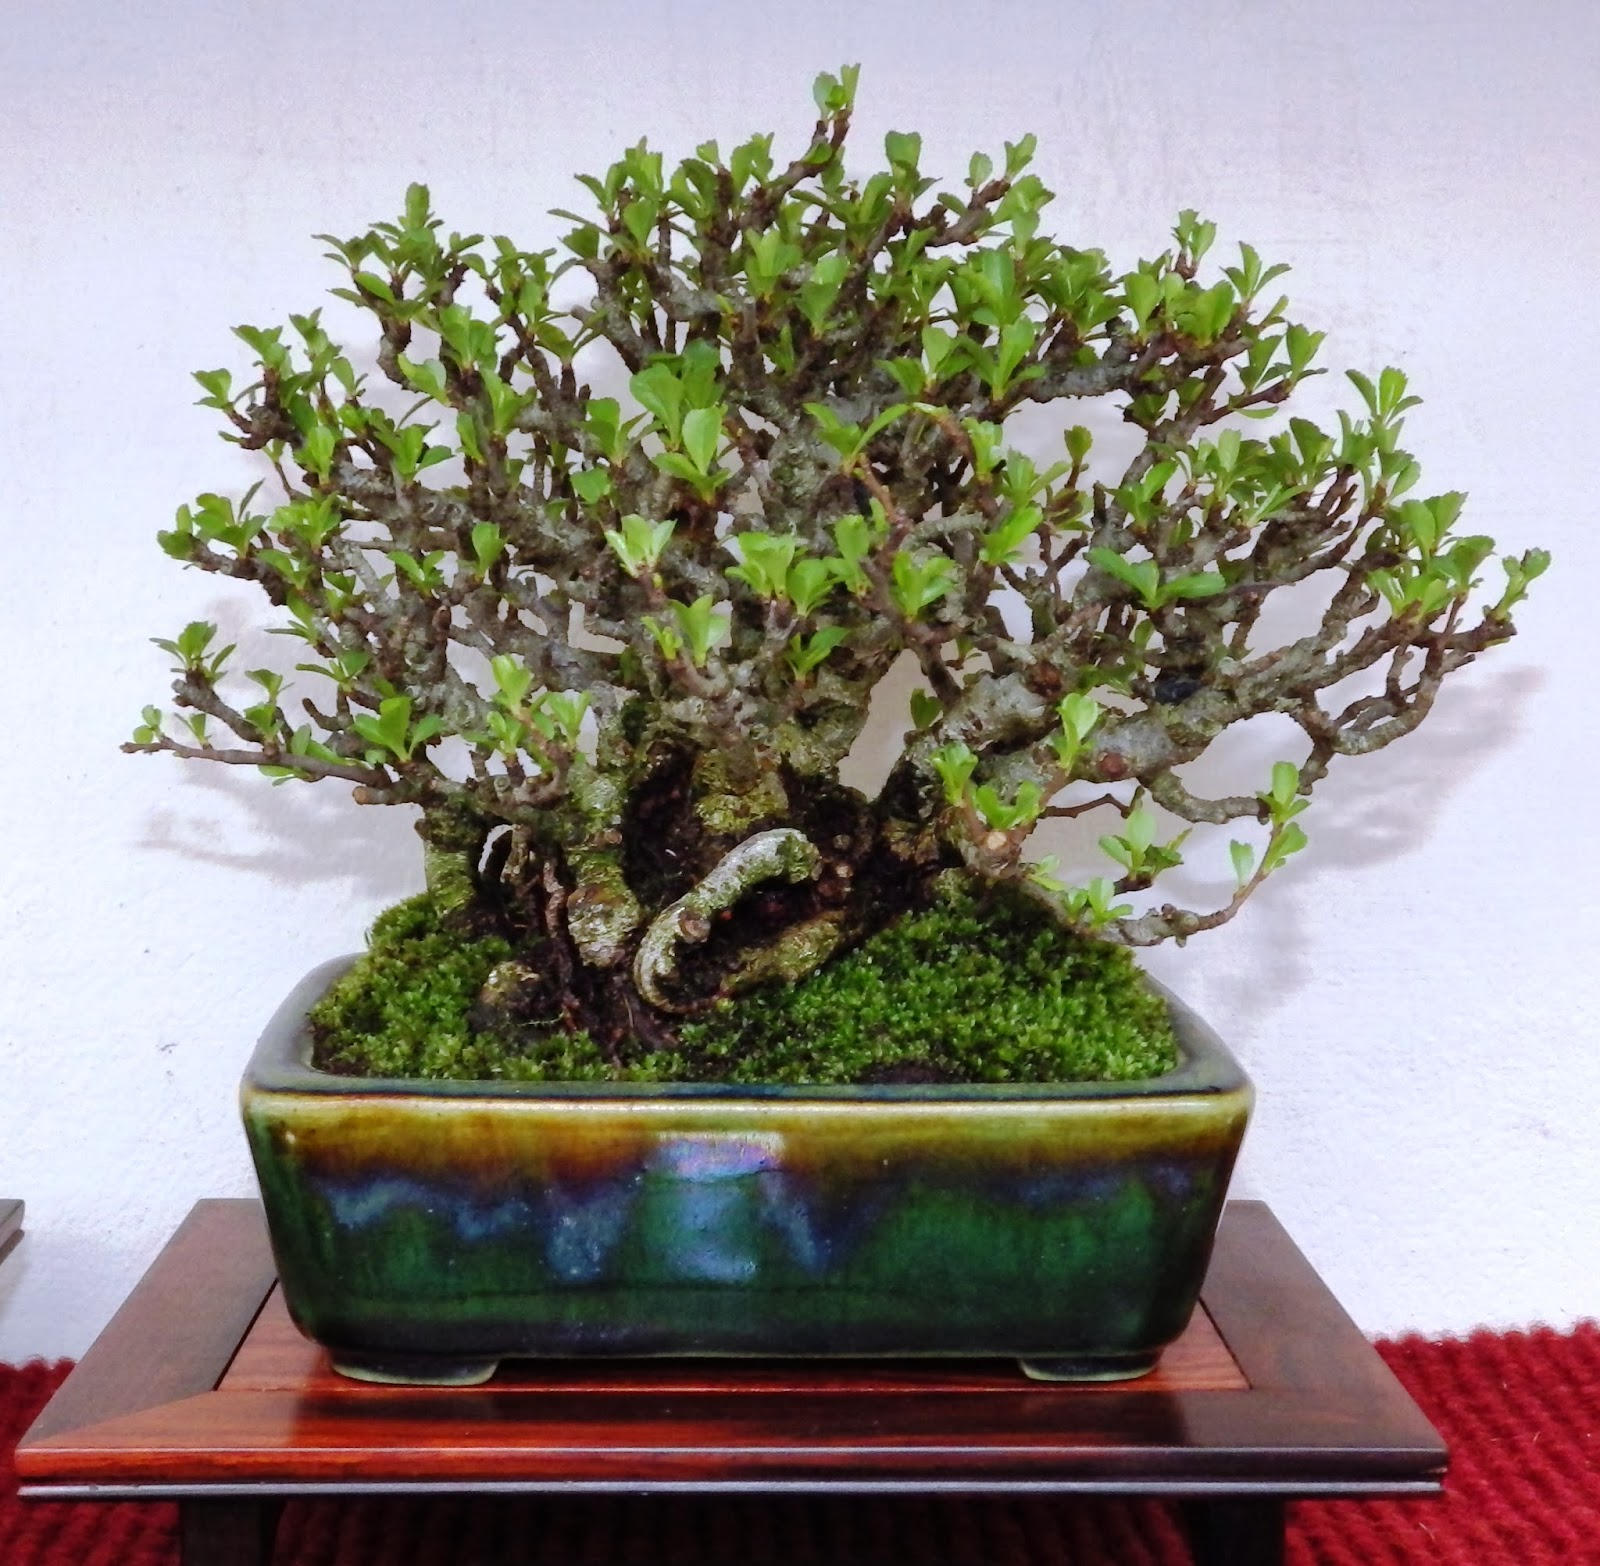 Bespoke Bonsai Stands British Shohin Association Show 2014